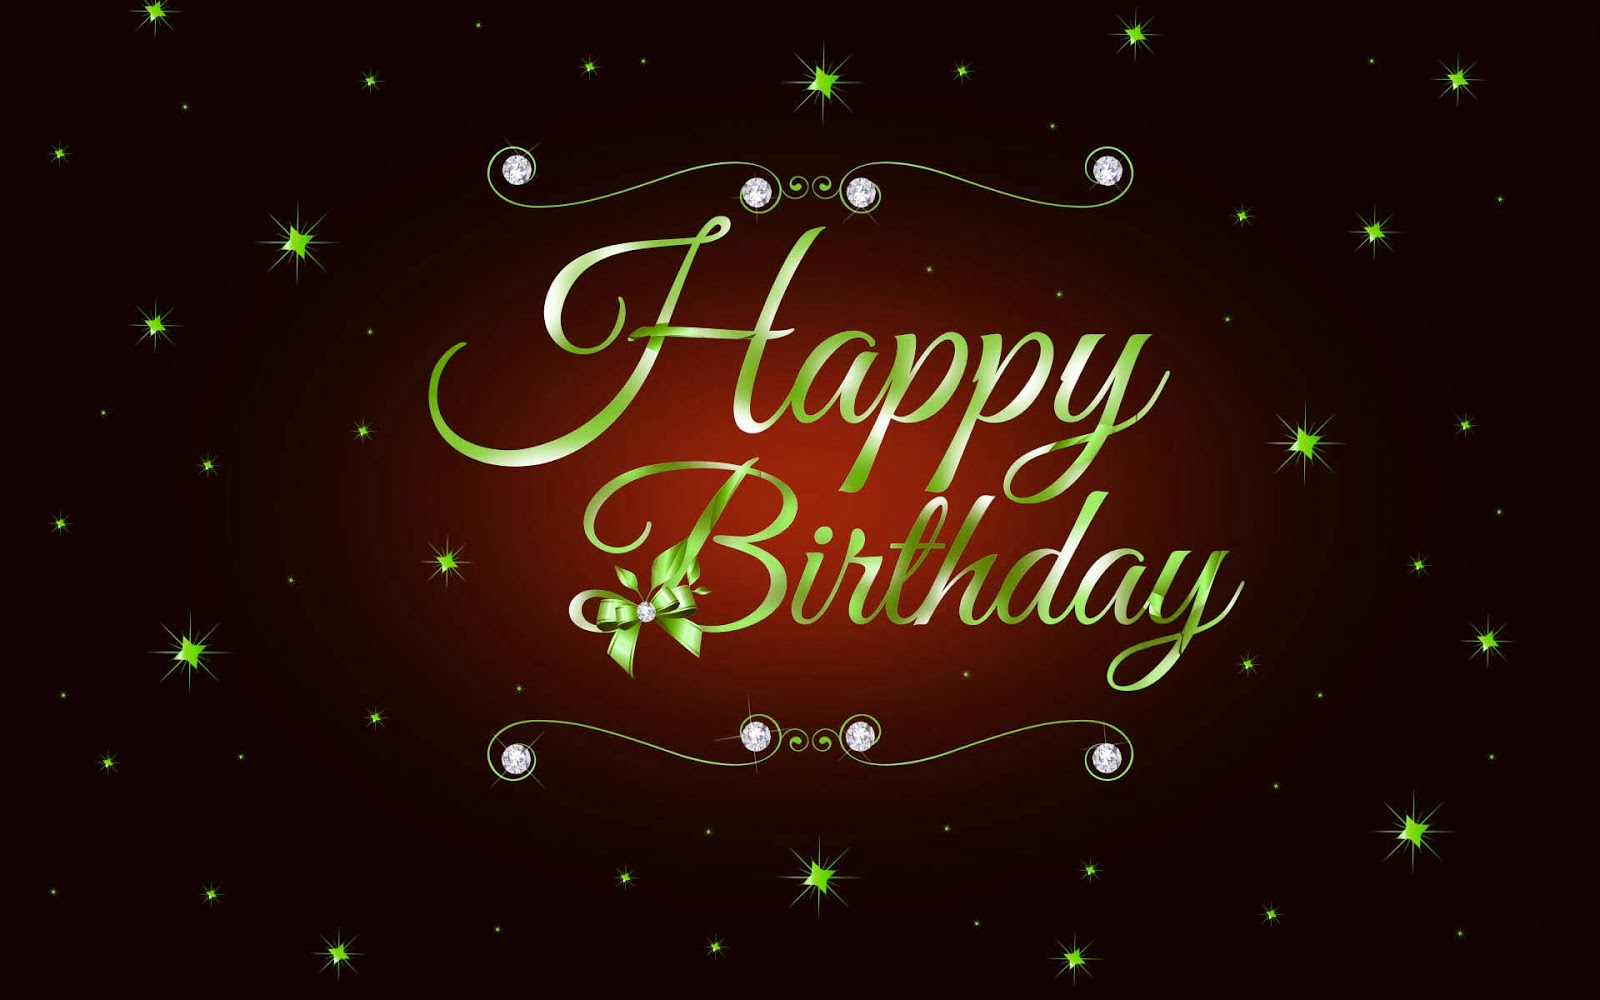 Happy-Birthday-Wishes-Greetings-Vector-green-theme